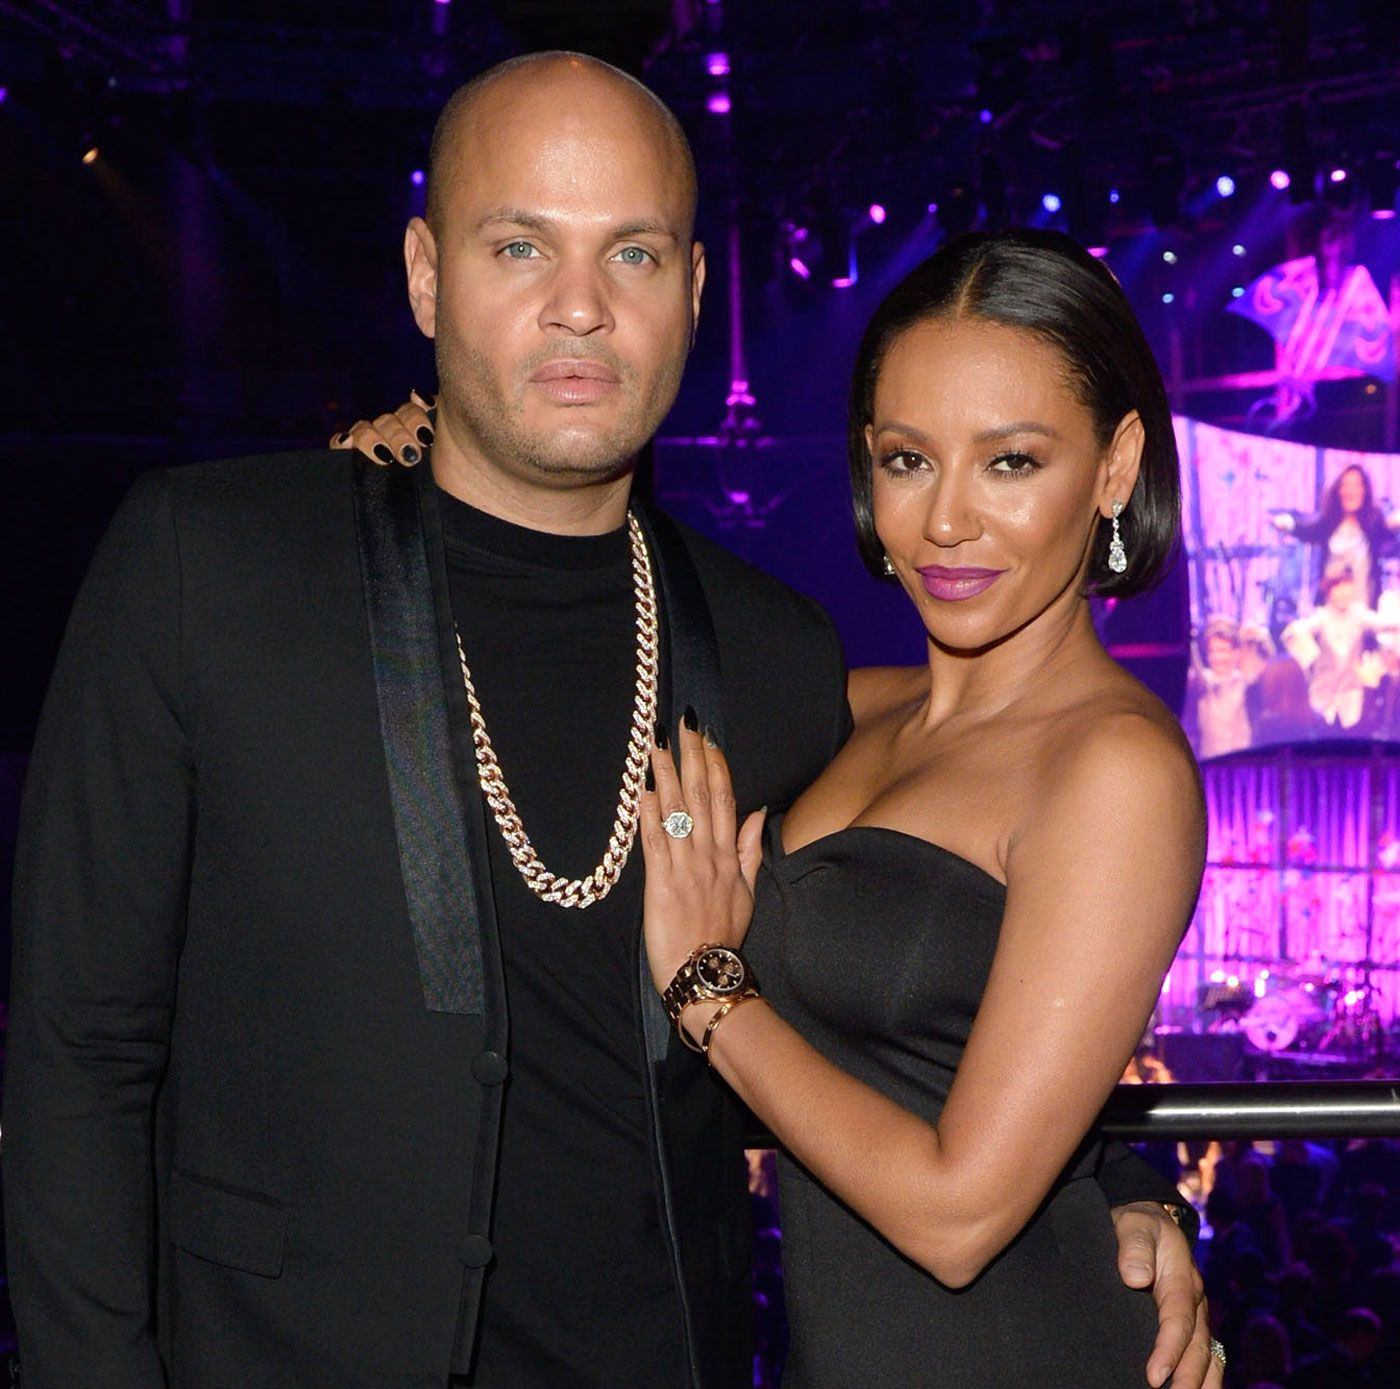 Mel B Moves Out of Home Amid Stephen Belafonte Abuse Rumors Report